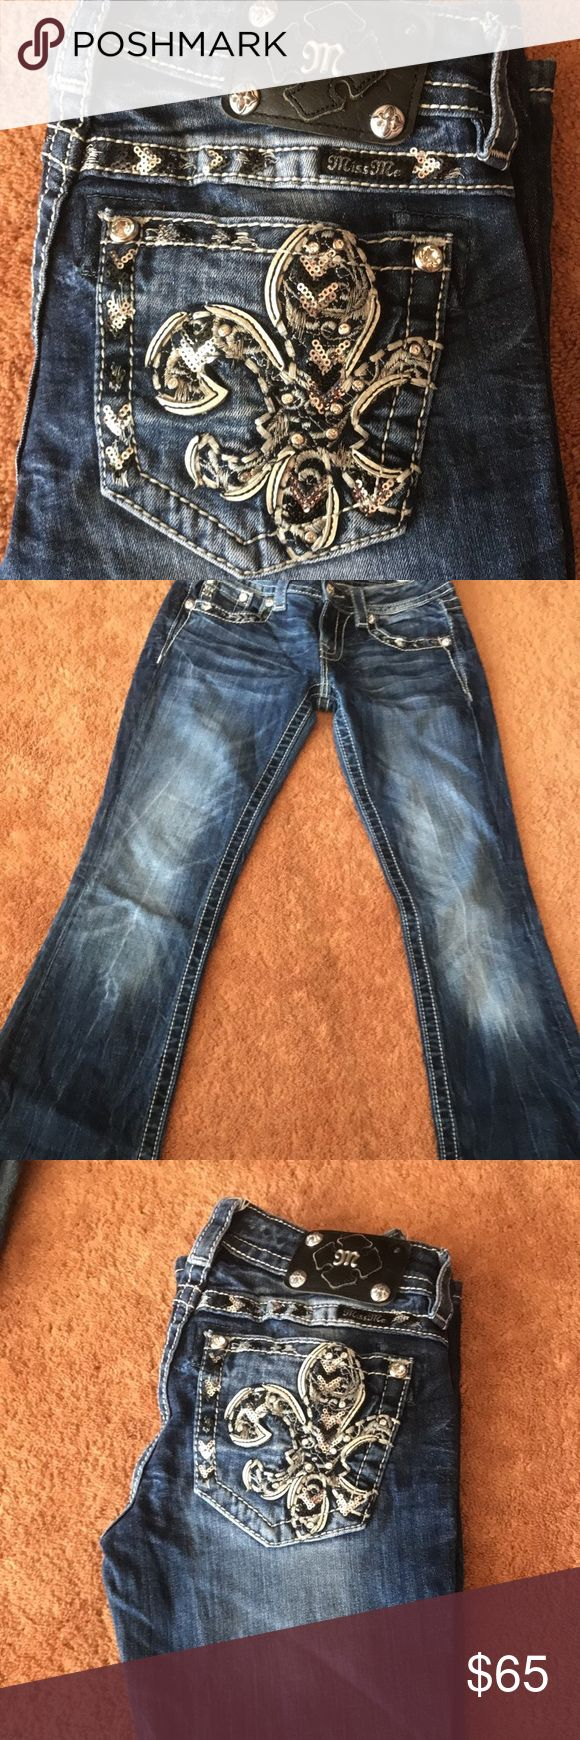 Miss Me Jeans Dark wash Miss Me brand jeans with sparkly studded back pockets-size 25 Only worn twice!! Miss Me Jeans Boot Cut